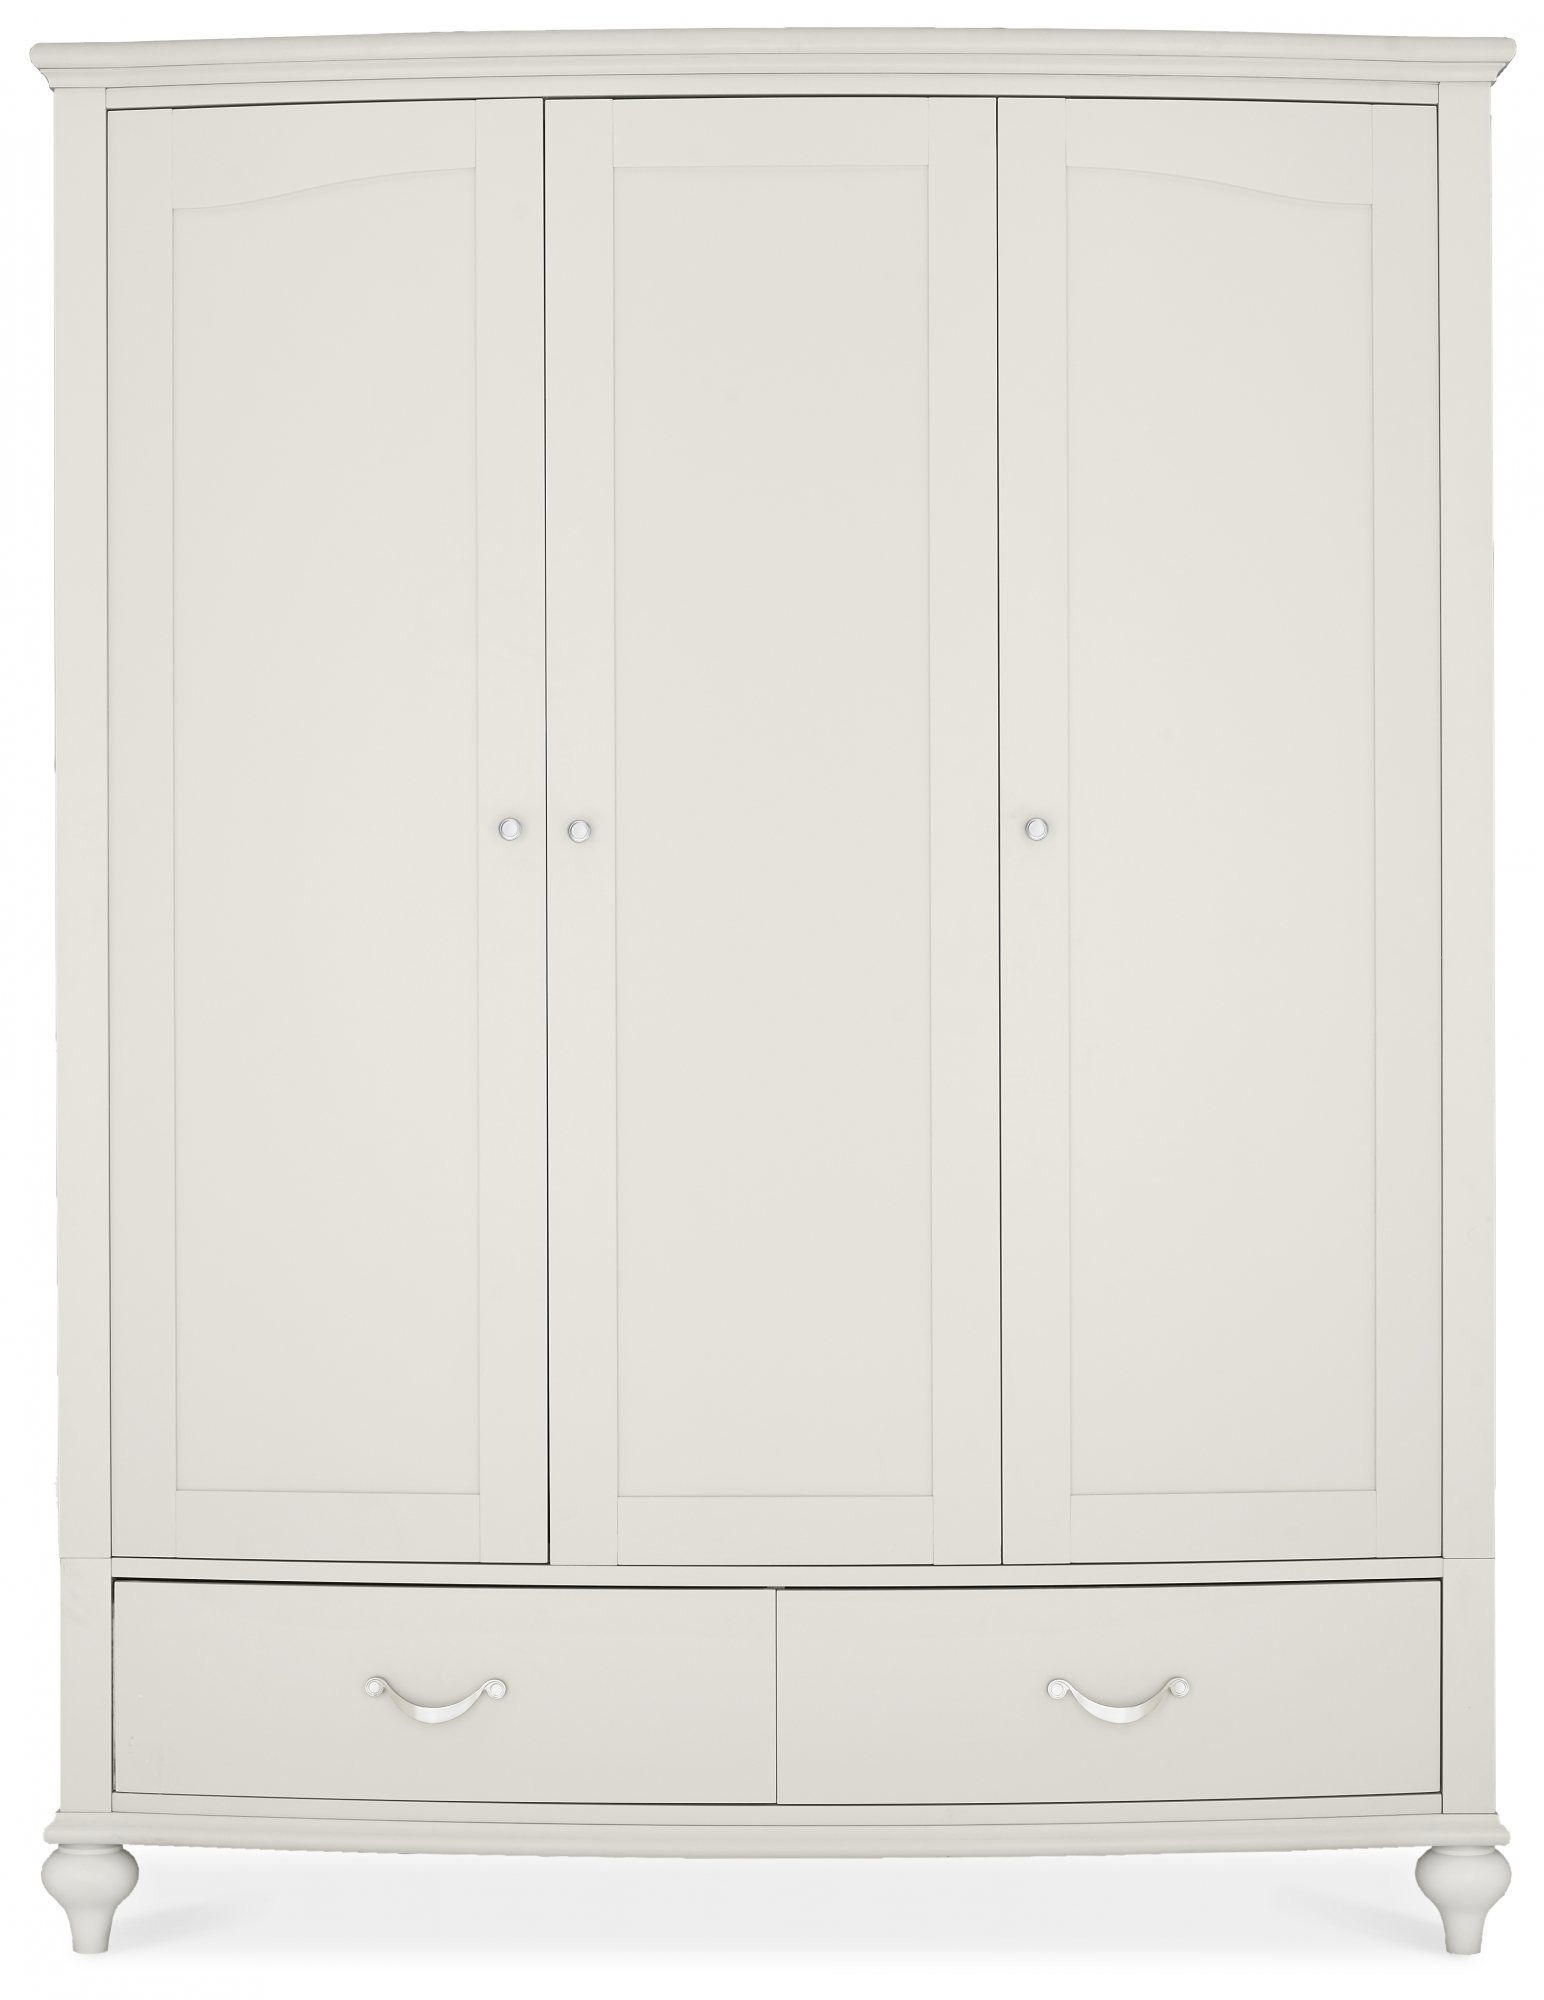 MONICA GREY TRIPLE WARDROBE - FRONT DETAIL